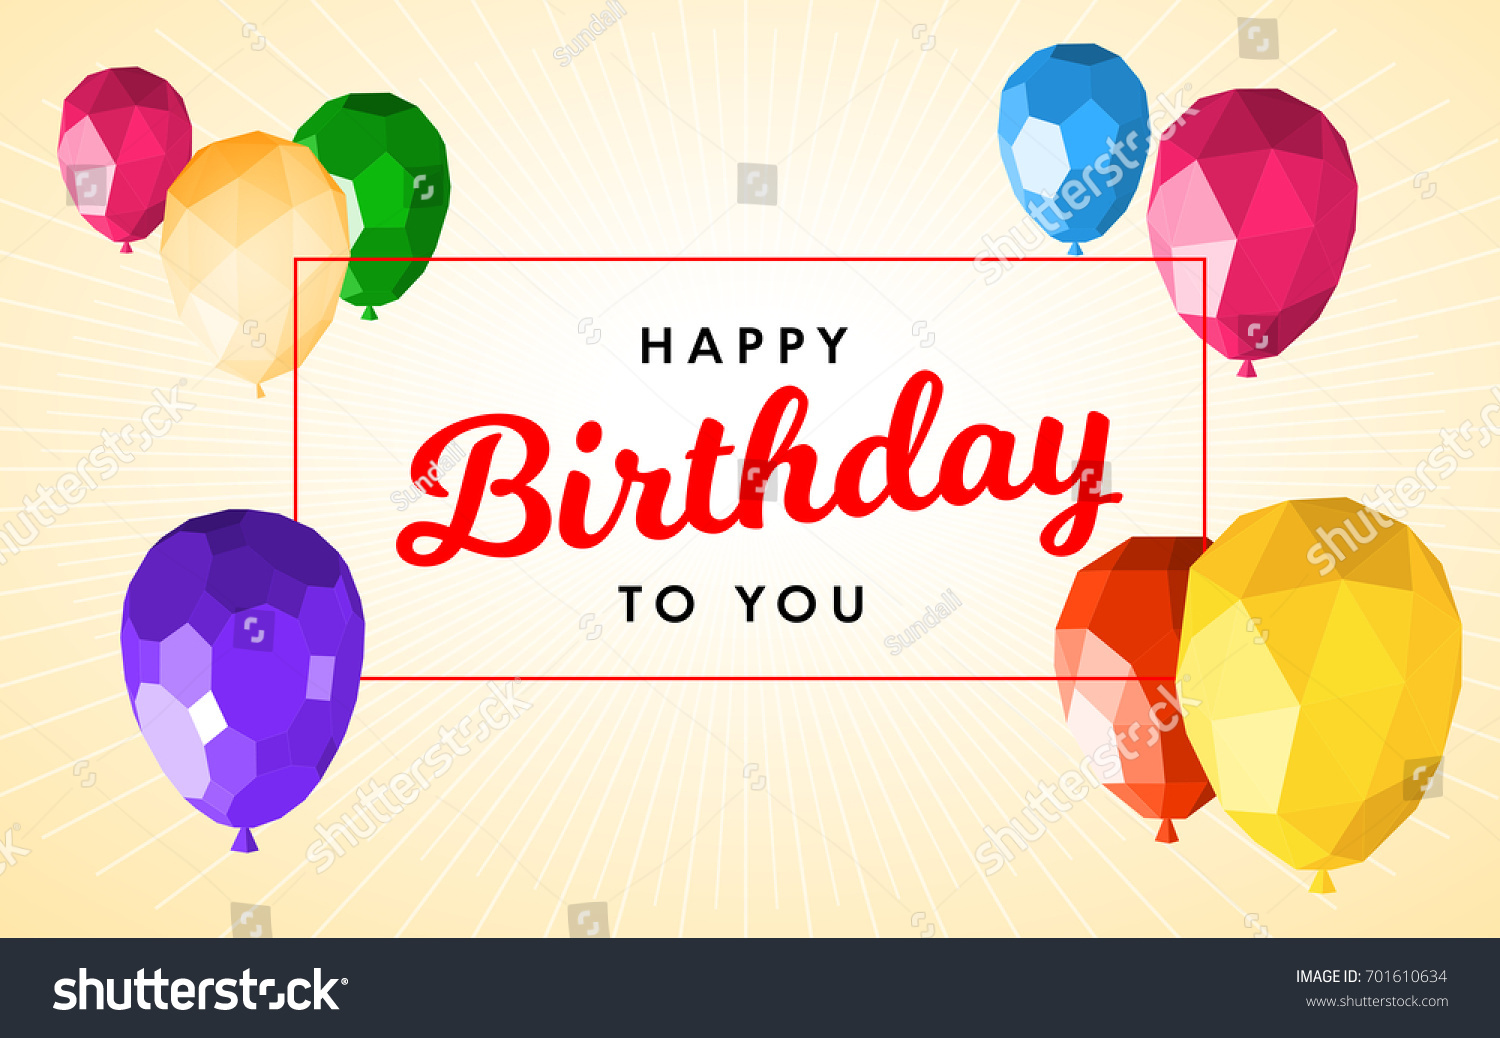 happy birthday greeting card template modern stock vector (royalty